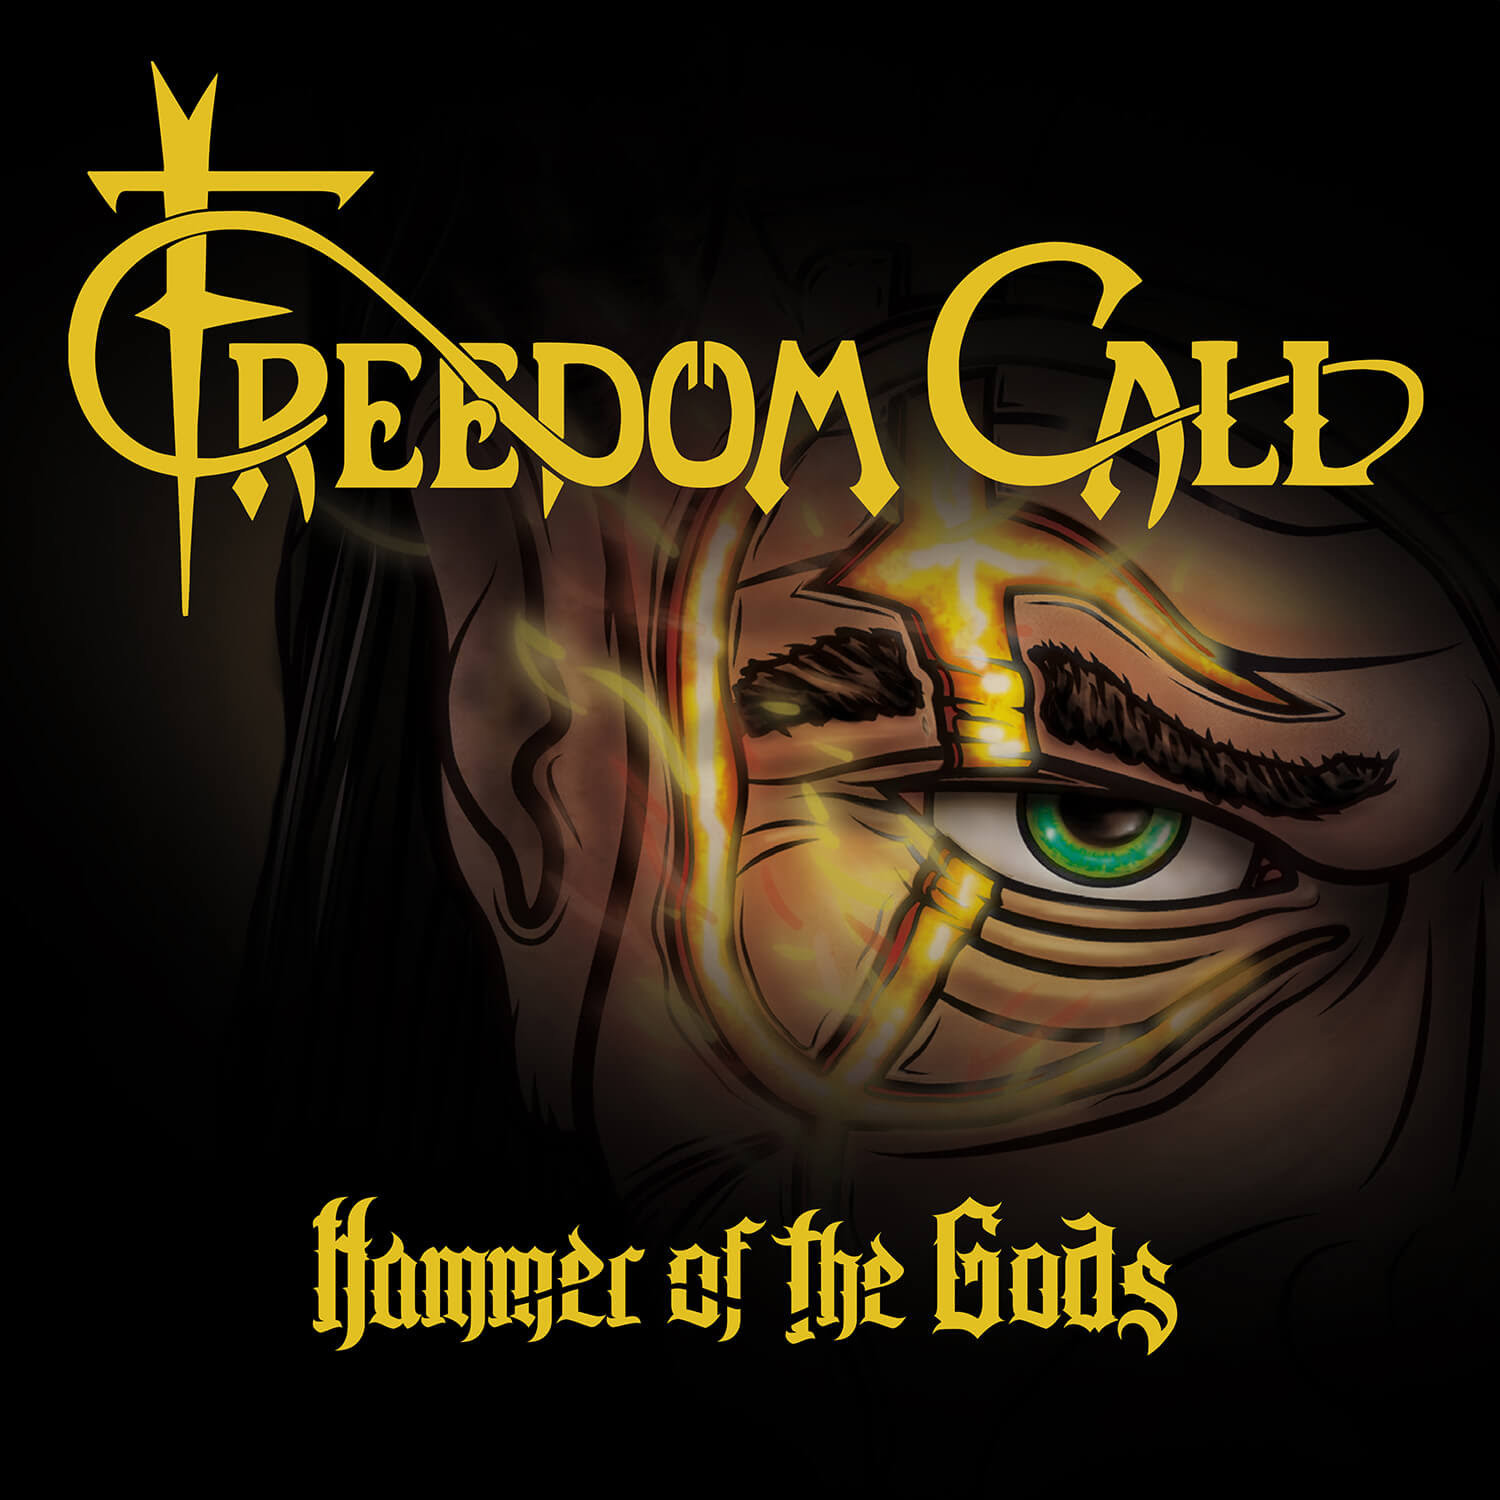 Freedom Call : Hammer Of The Gods